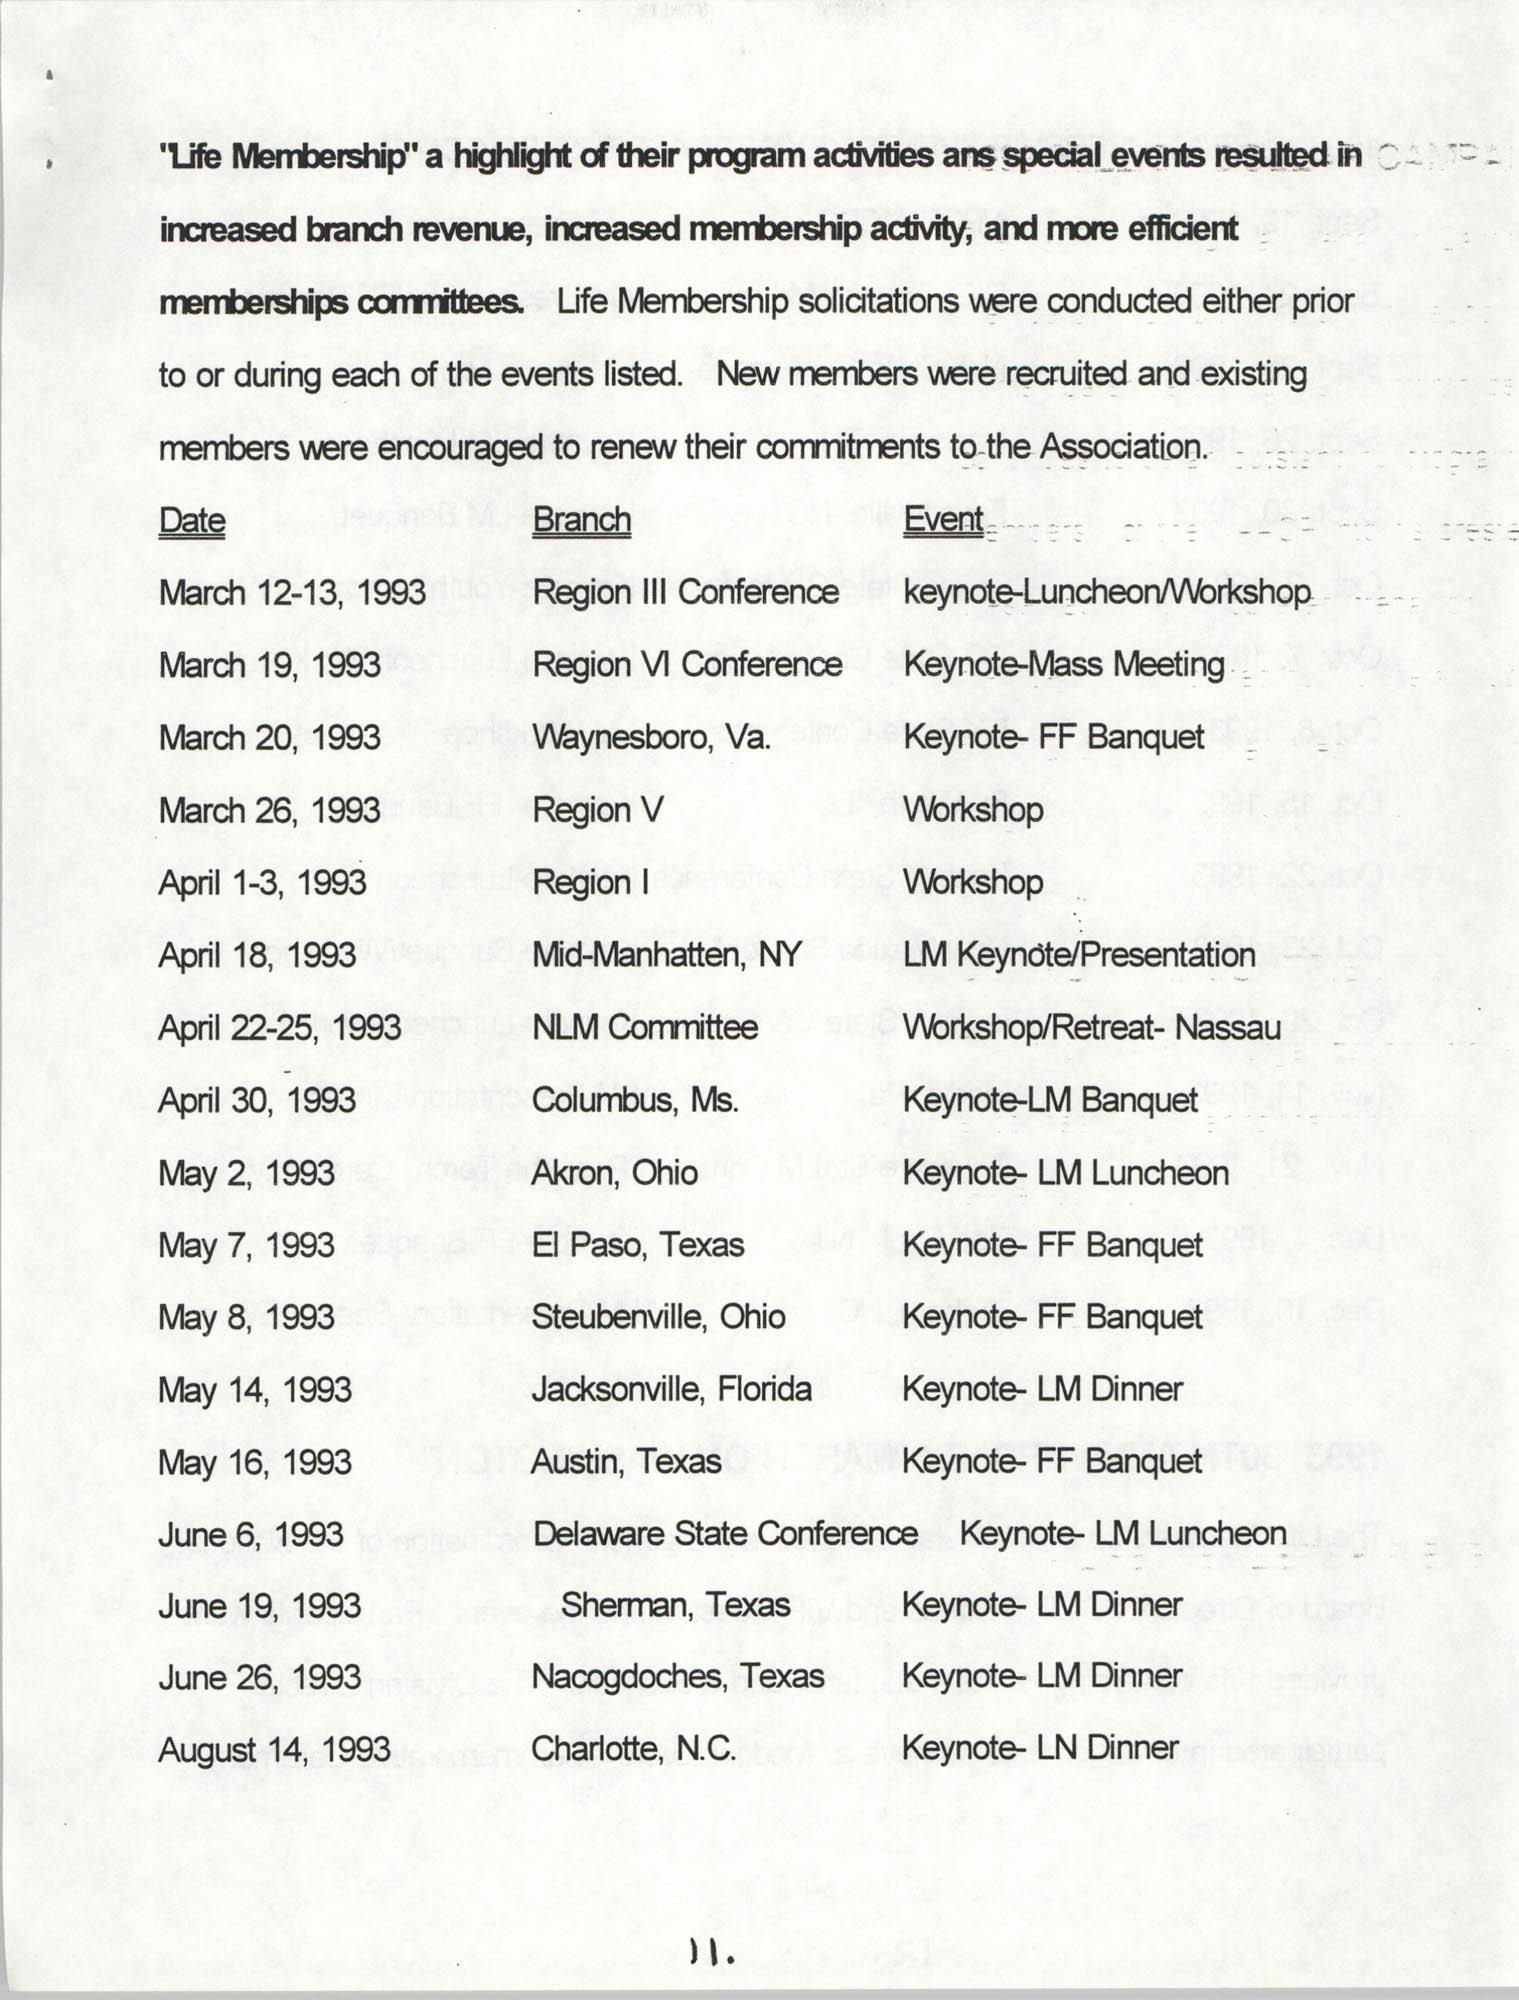 Life Membership Division, 1993 Annual Report, Page 11